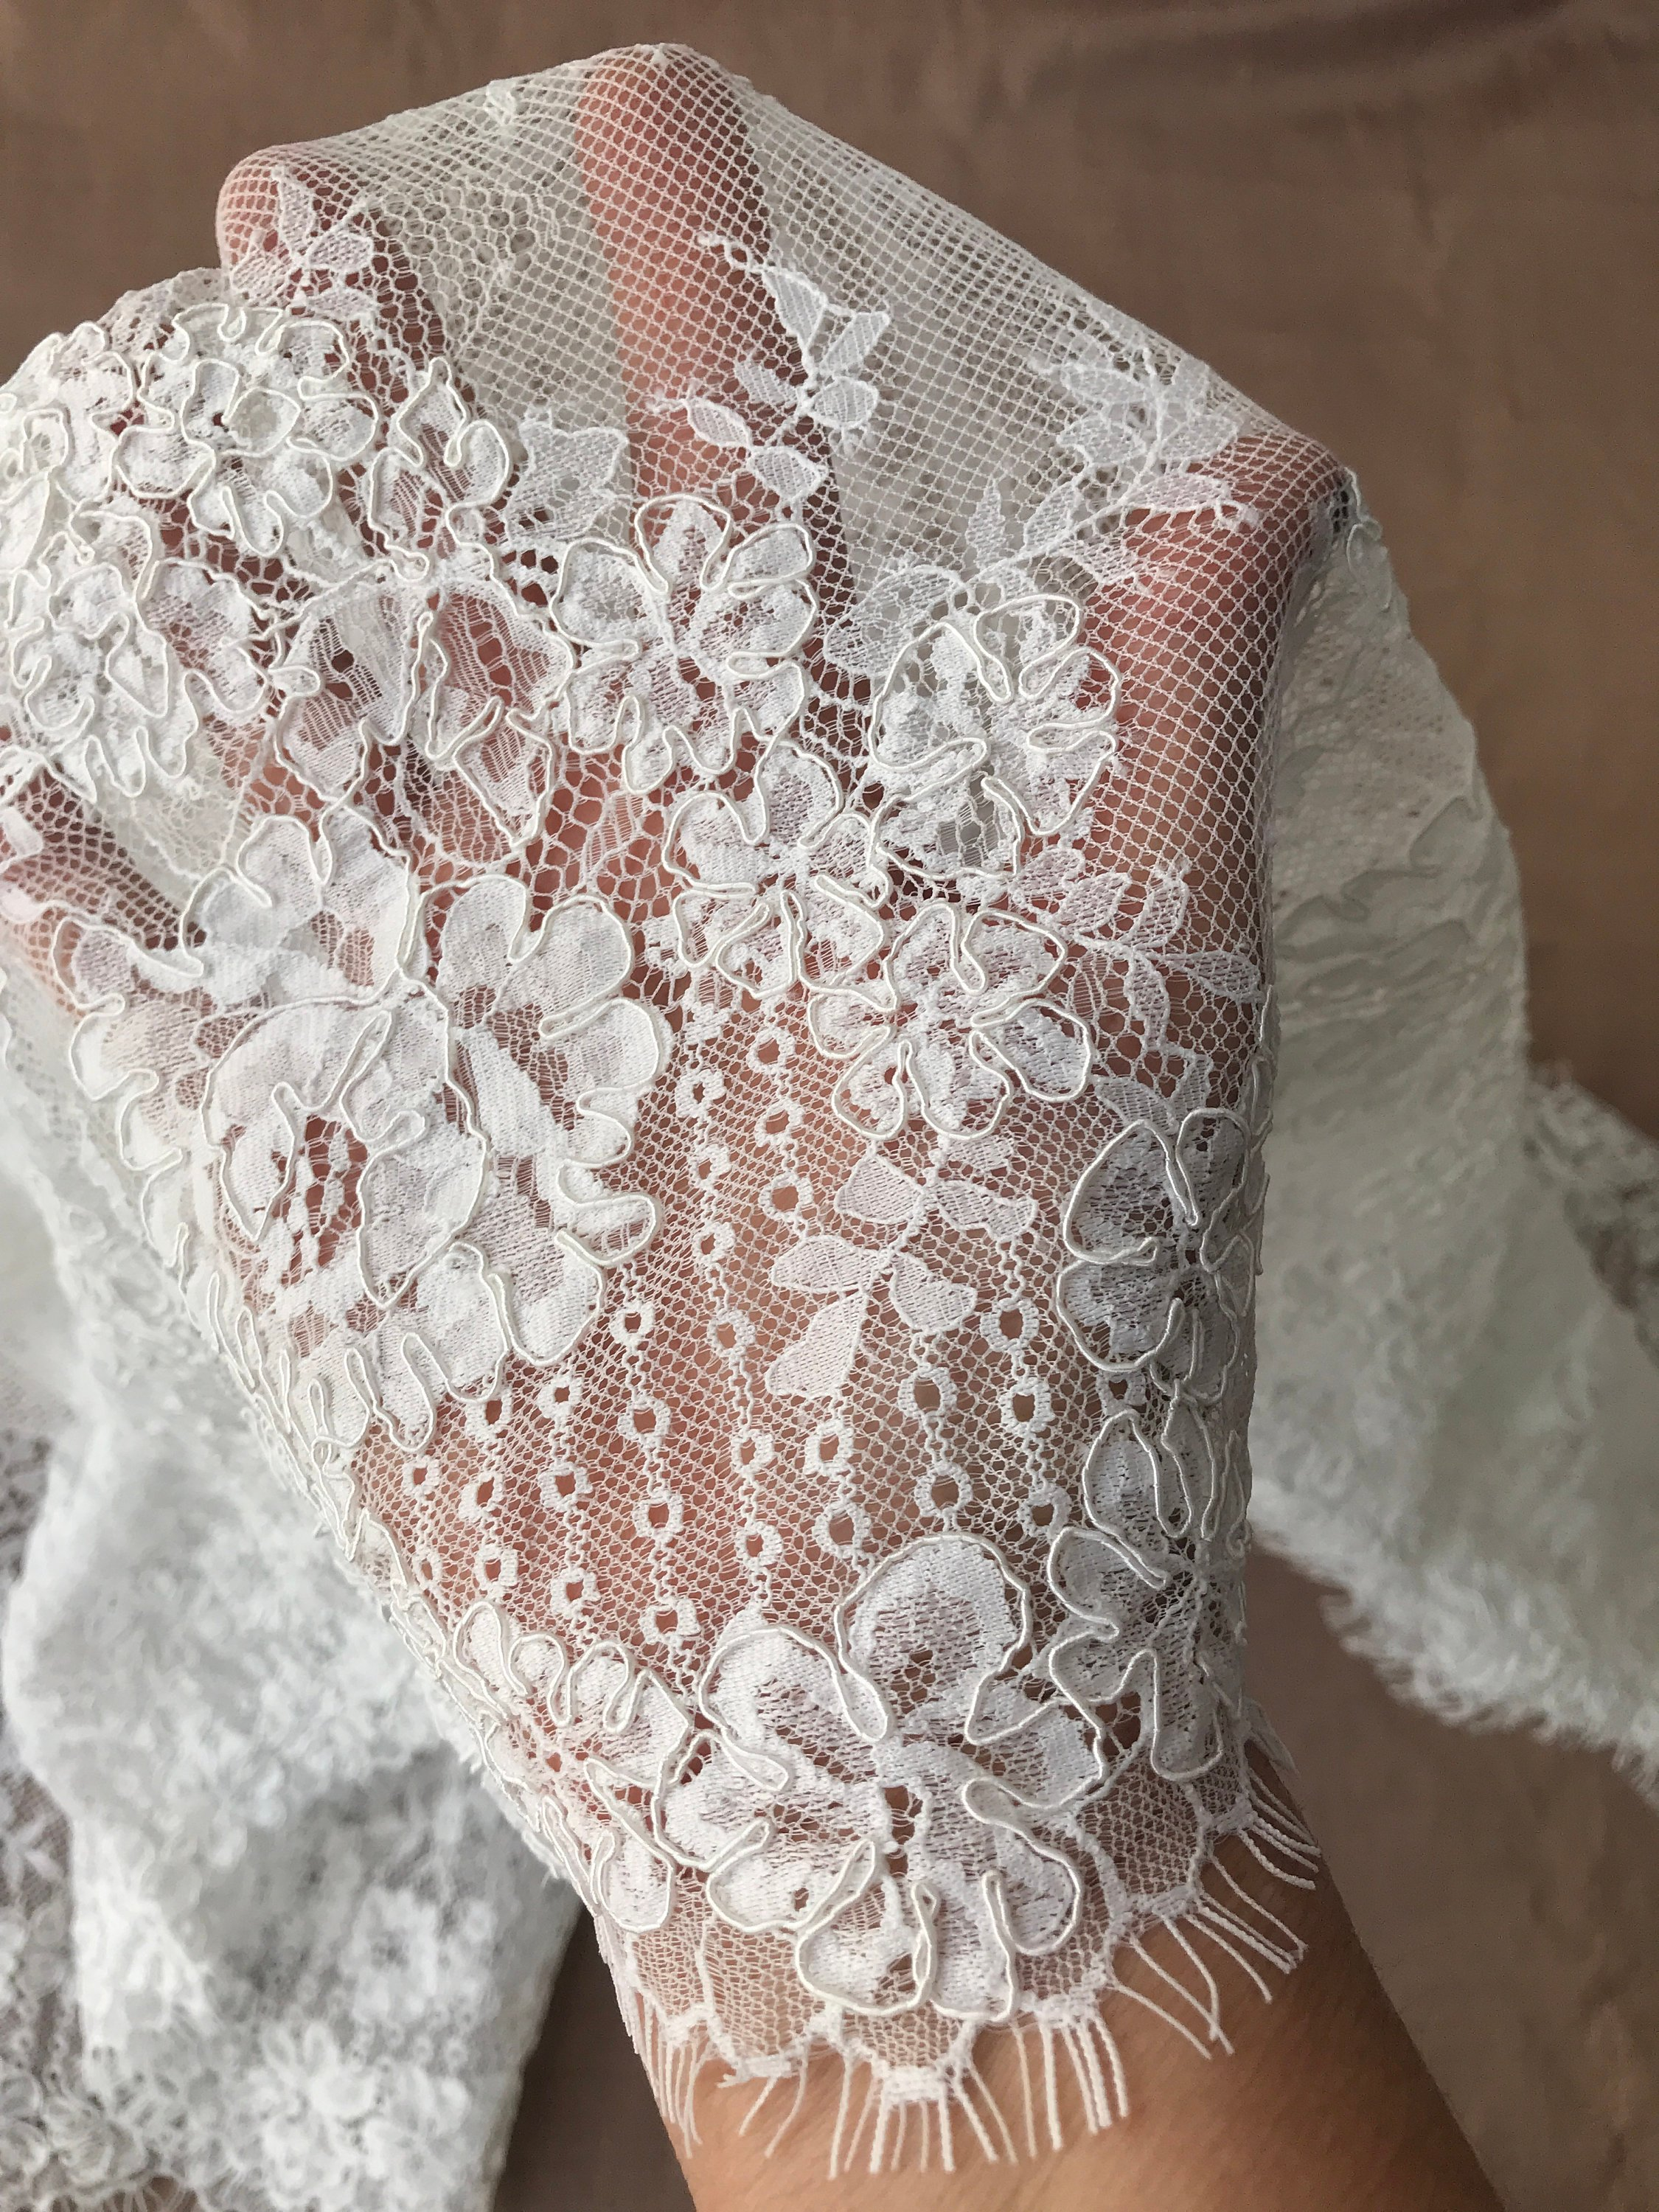 off white ivory bridal lace corded border lace scallop edge both sides with eyelashes veiling 45cm wide